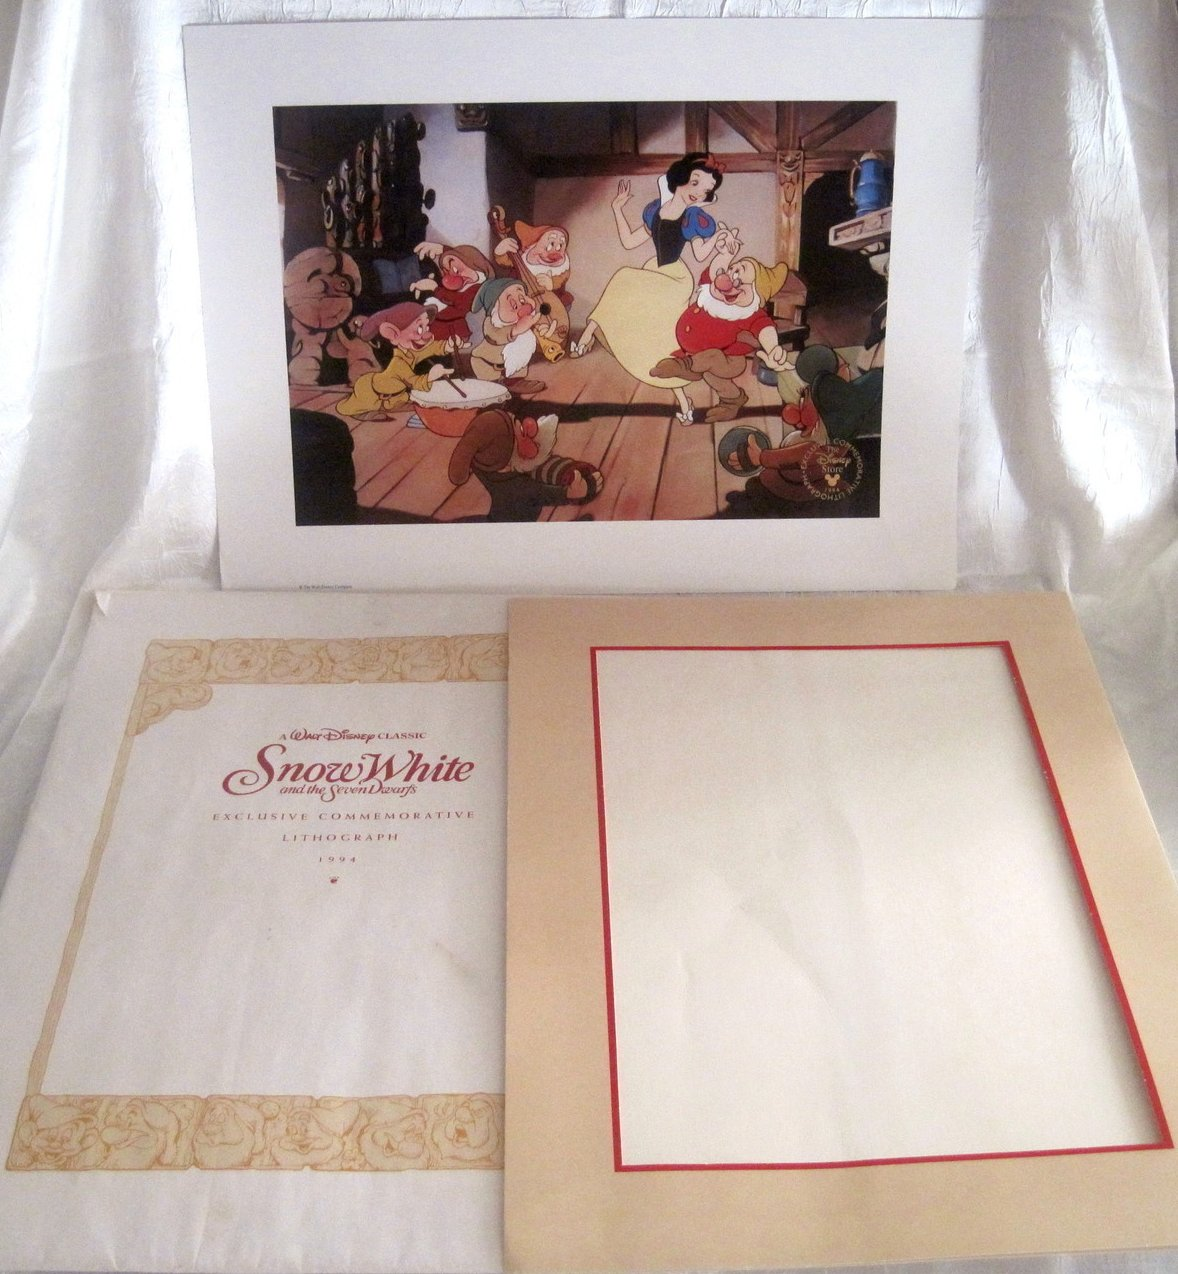 Image 3 of Snow White and the Seven Dwarfs Disney Lithograph 1994